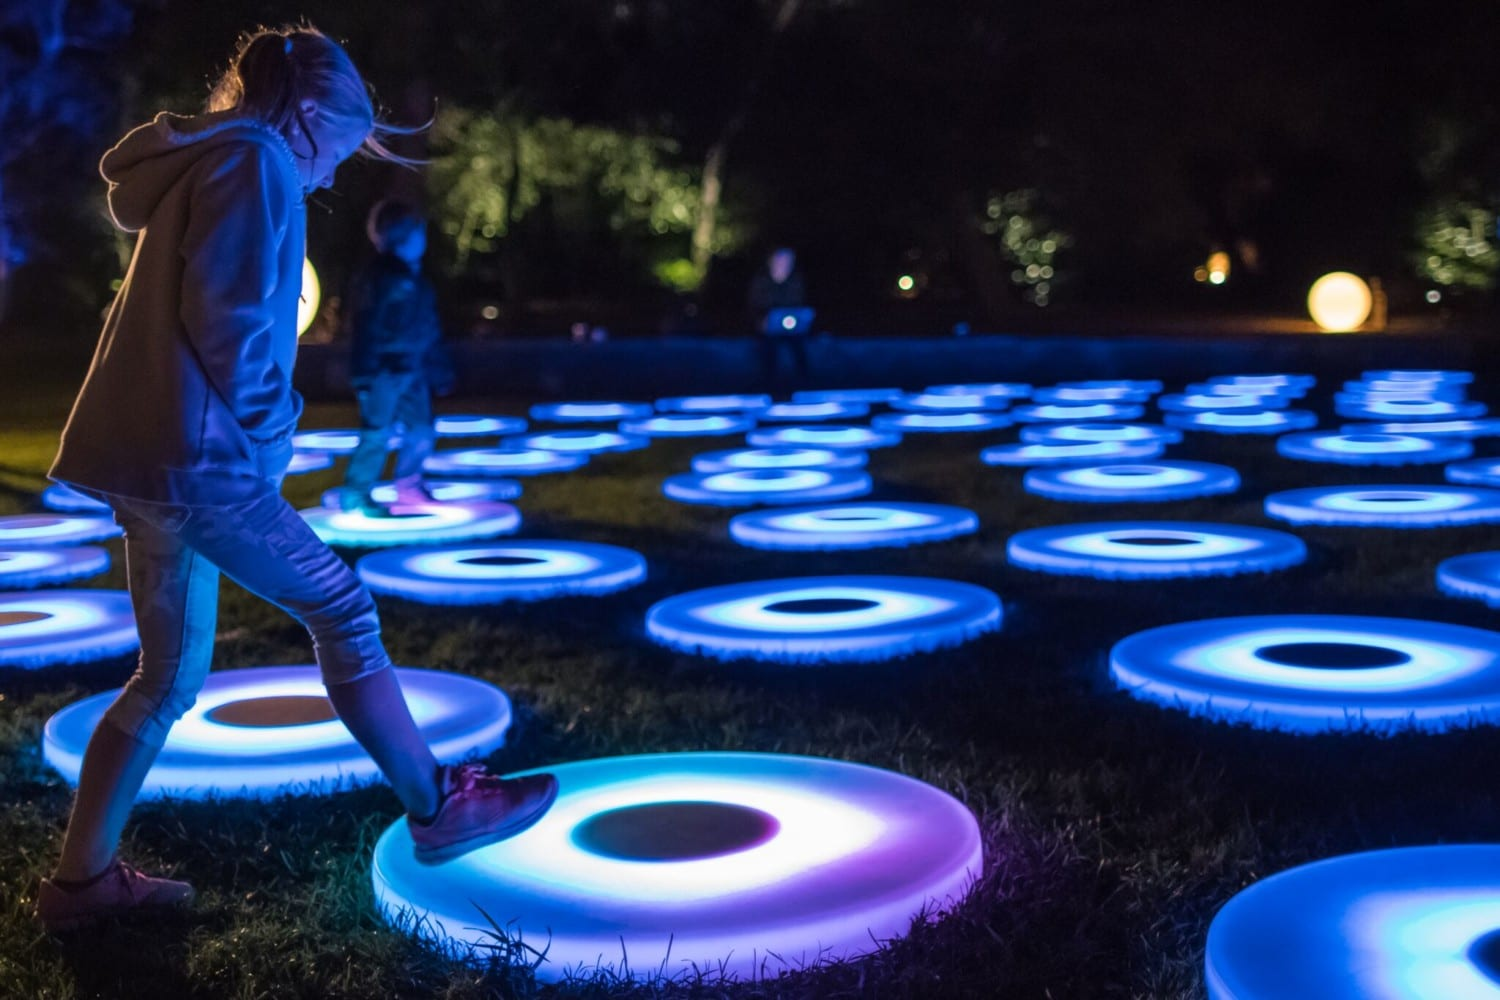 Child playing on interactive glowing light ornaments at night